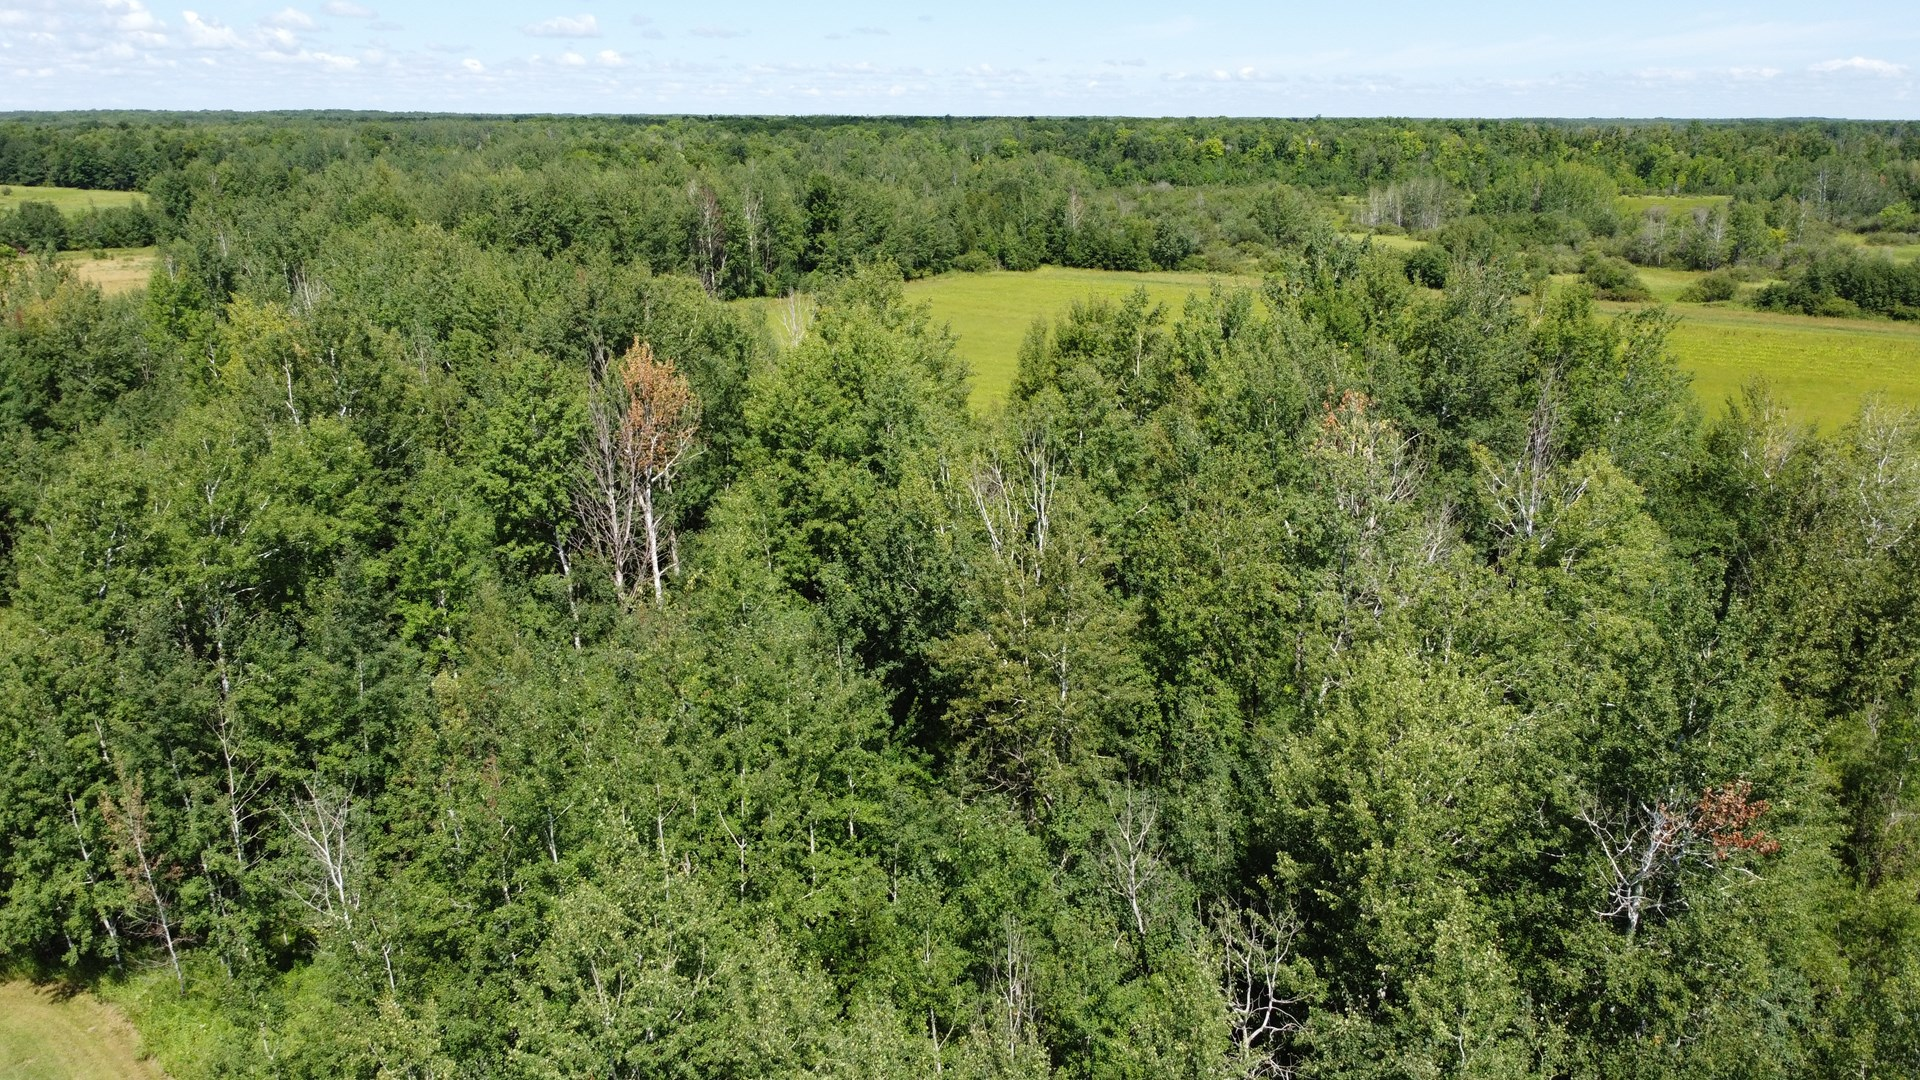 175 Acres of Prime Hunting Land in Mille Lacs Co